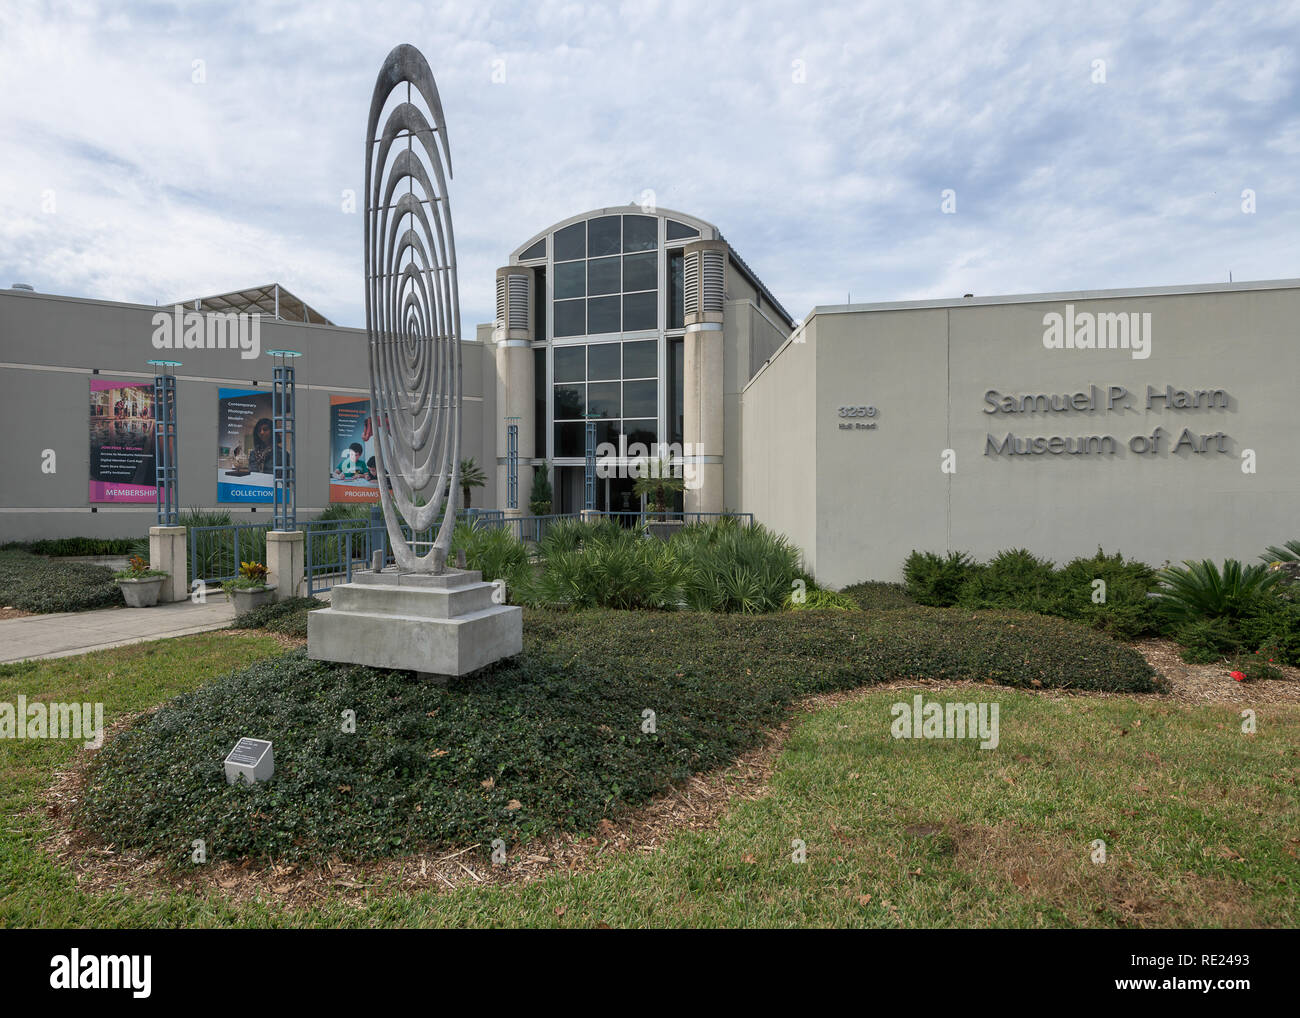 Samuel P. Harn Museum of Art on the campus of the University of Florida on Hull Road in Gainesville, Florida - Stock Image